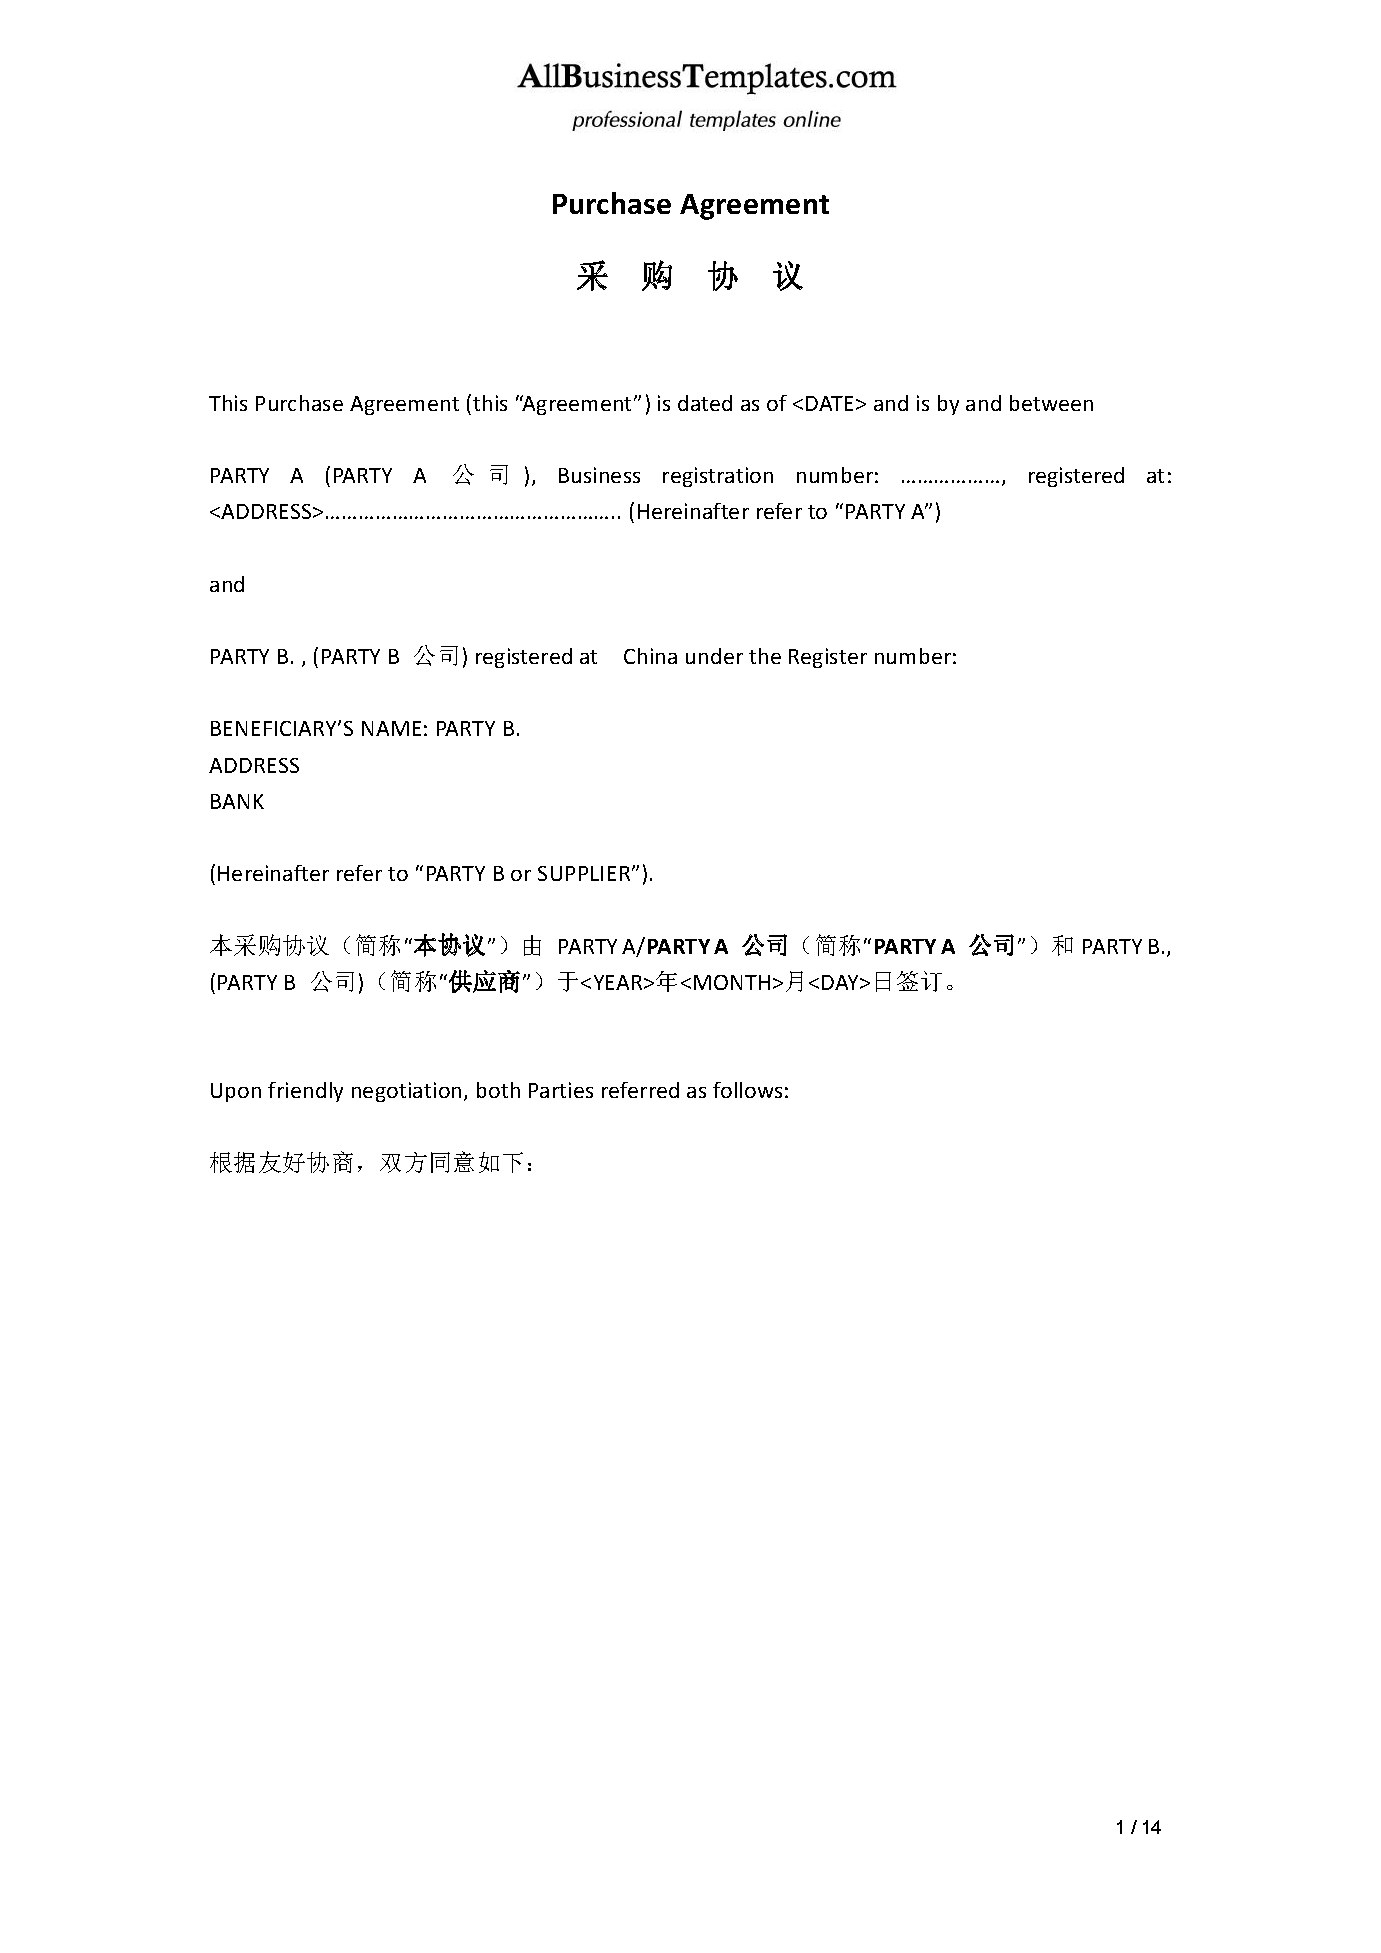 purchase agreement chinese and english language